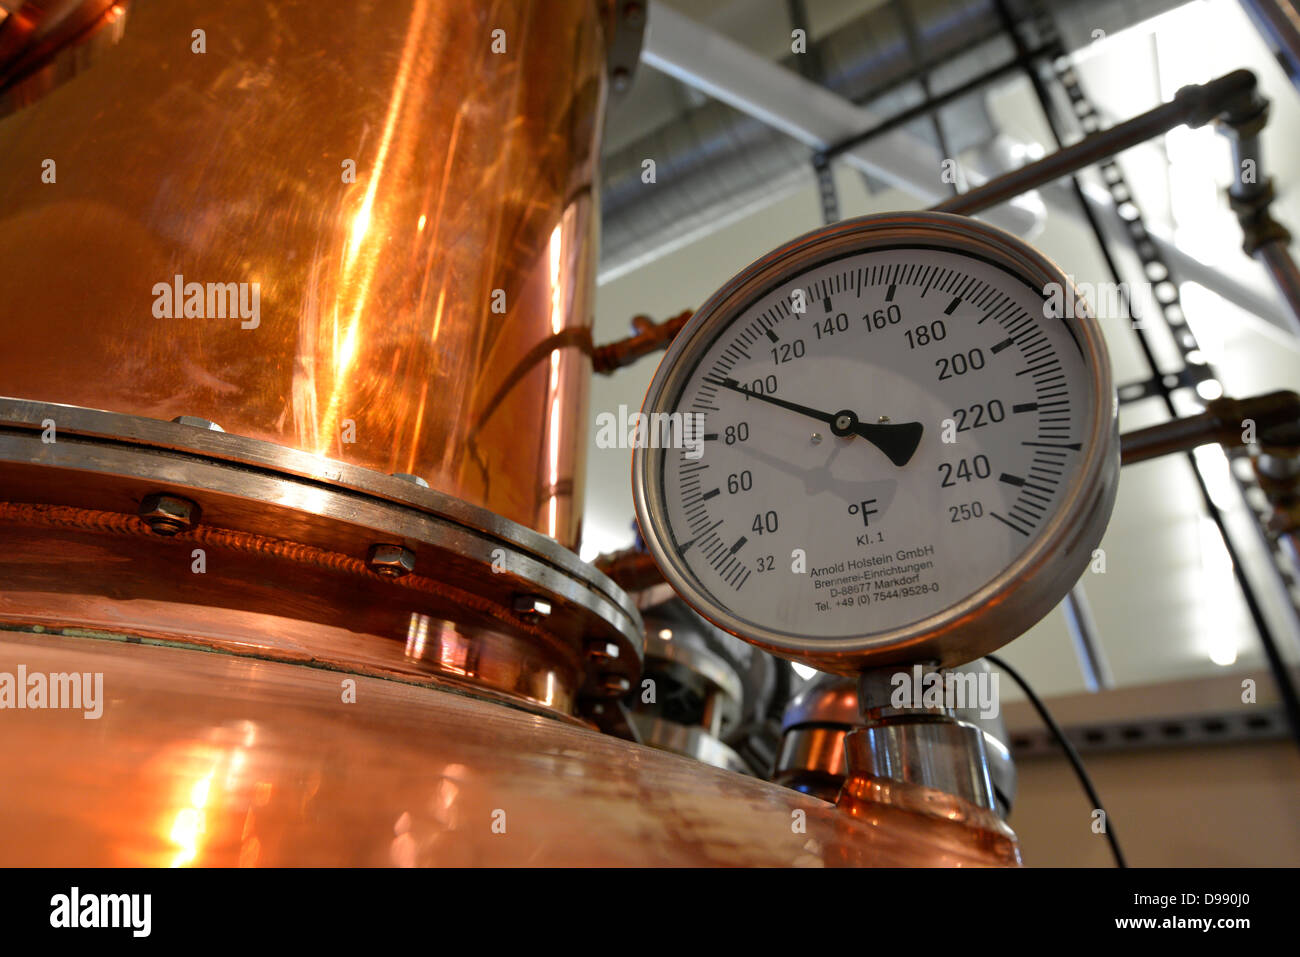 Temperature gauge on a an artisan made still at the Stein Distillery in Joseph, Oregon. - Stock Image